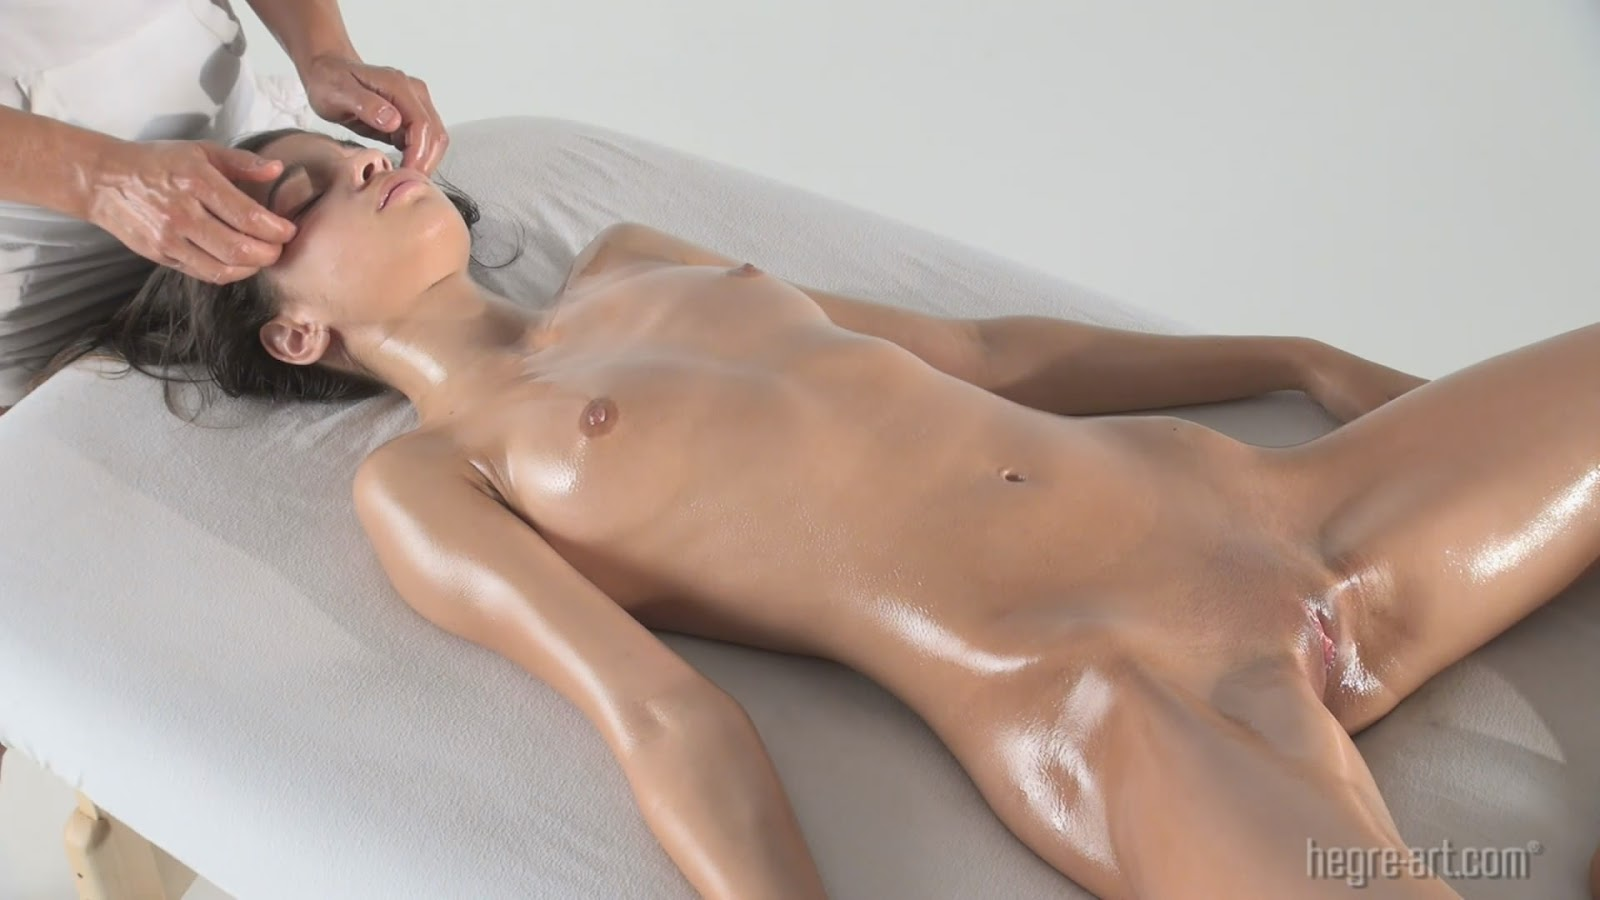 tags nude massage s:uploaddate